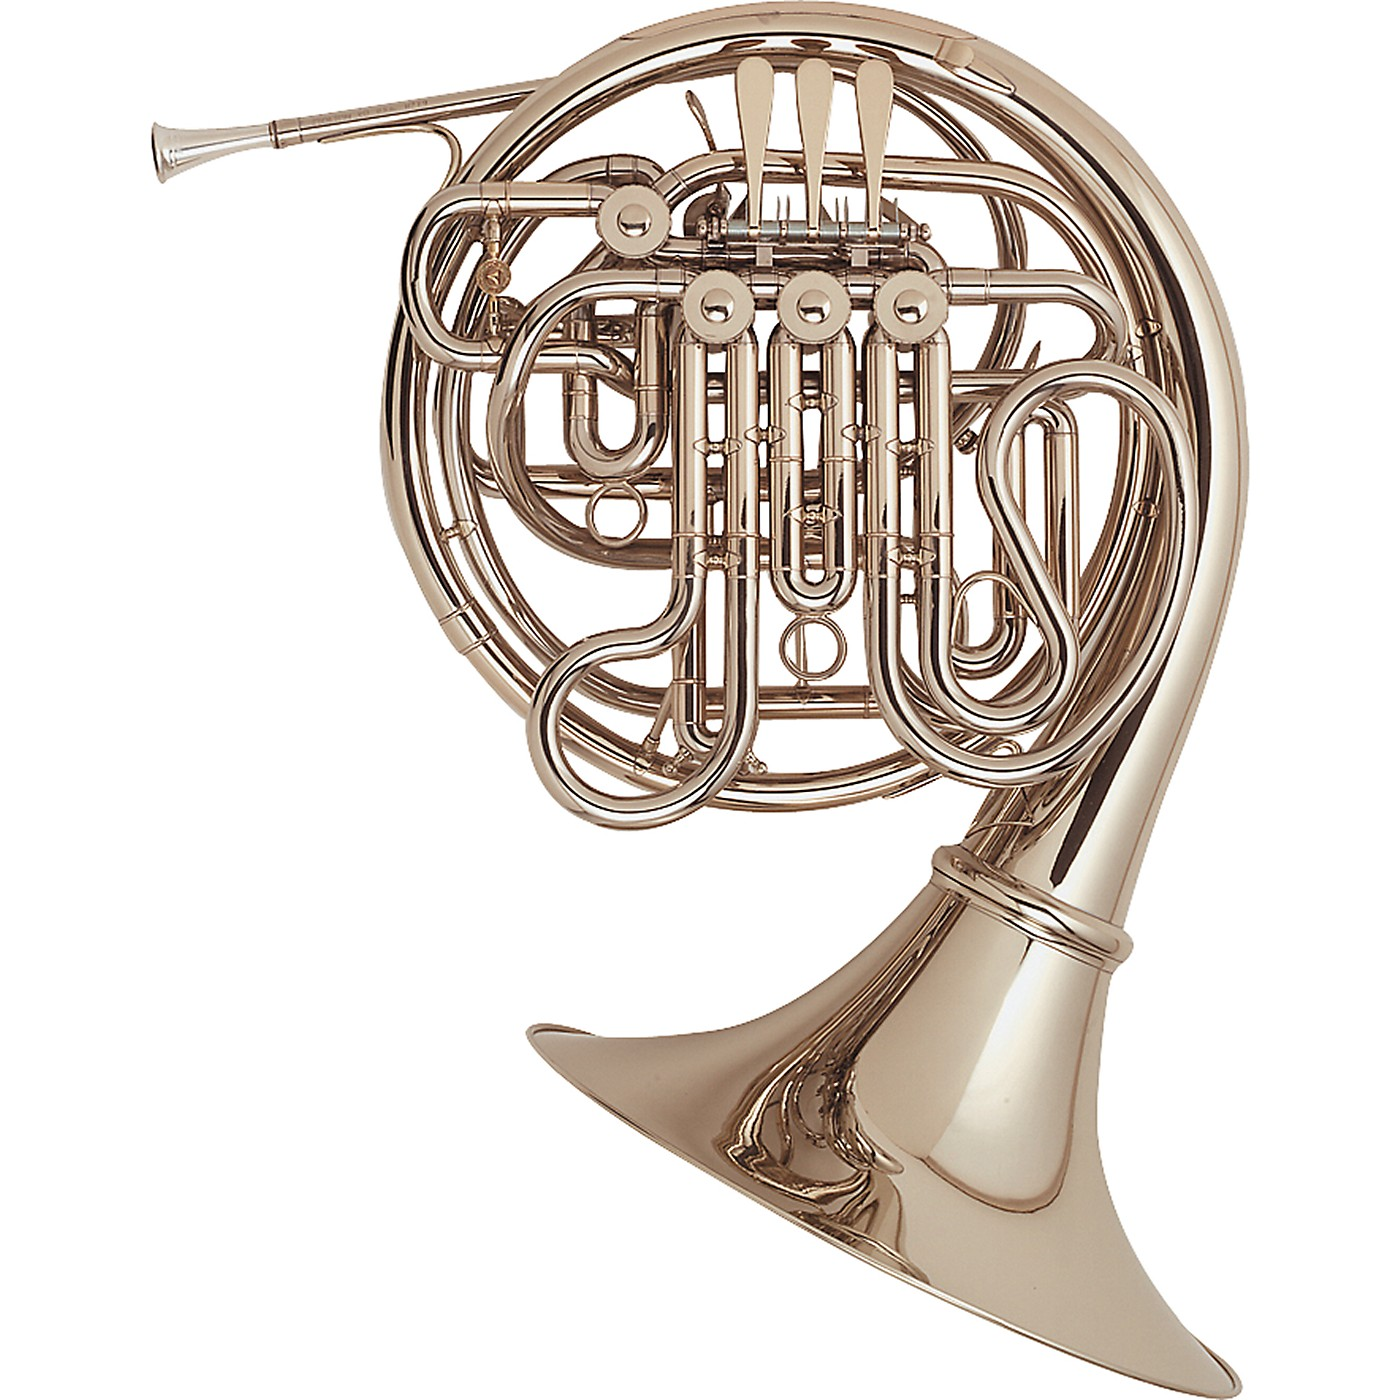 Holton H279 Farkas Professional French Horn thumbnail